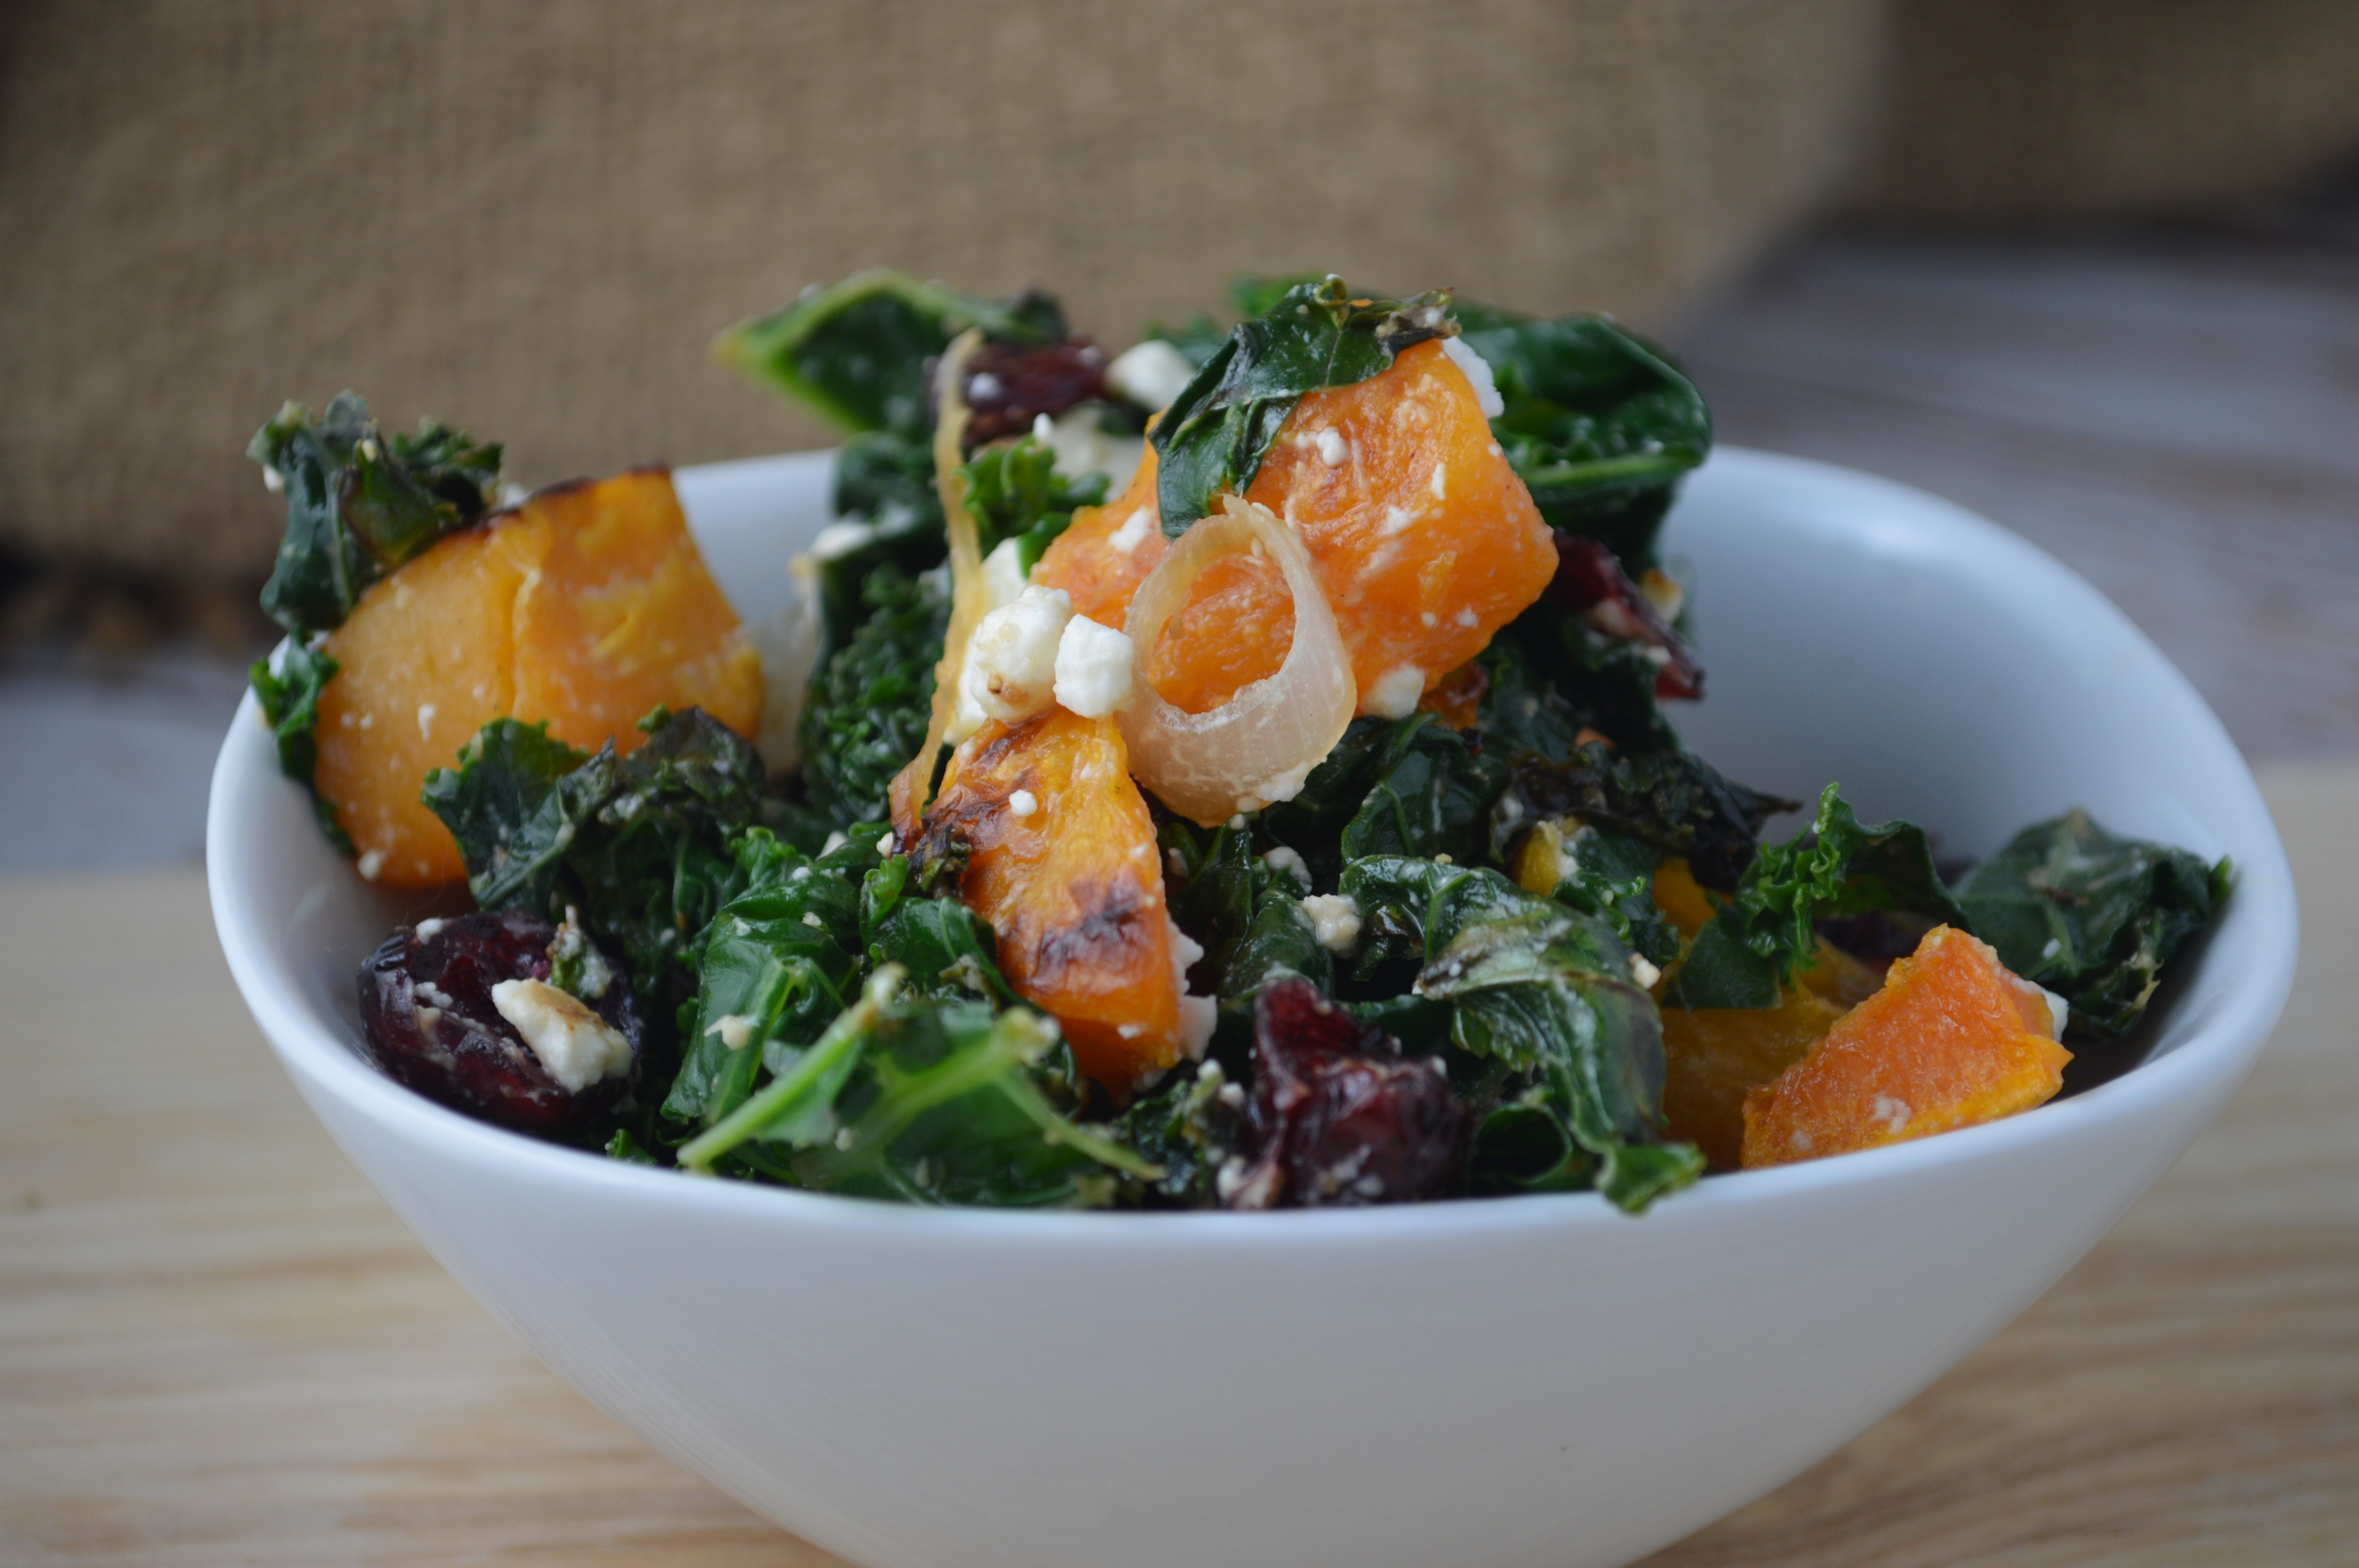 Kale, Squash and Goat Cheese Salad